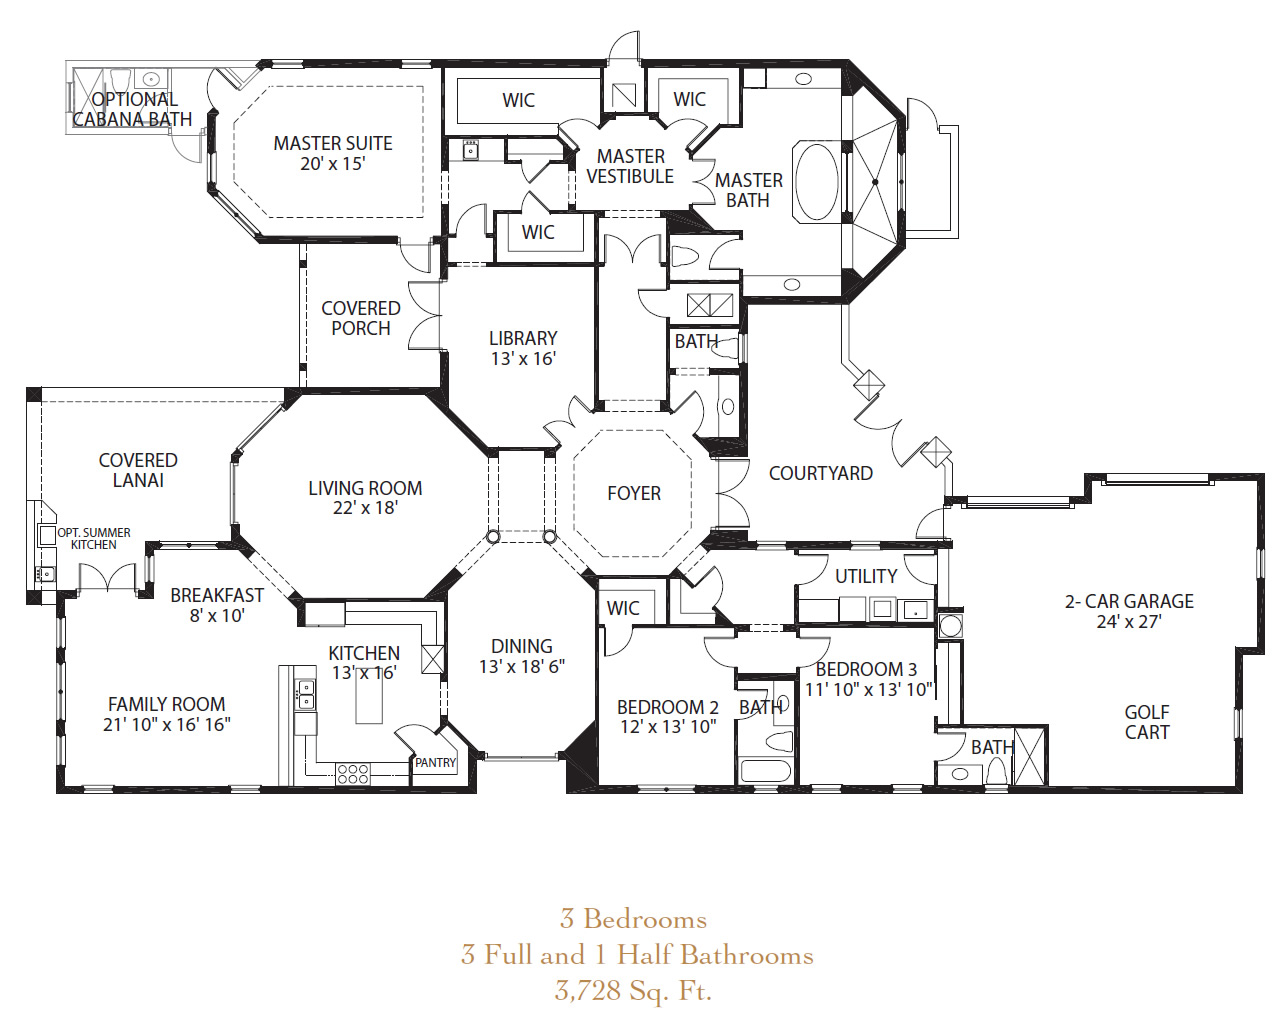 Lake Nona Golf And Country Club New Luxury Homes On The Golf Coursenew Build Homes